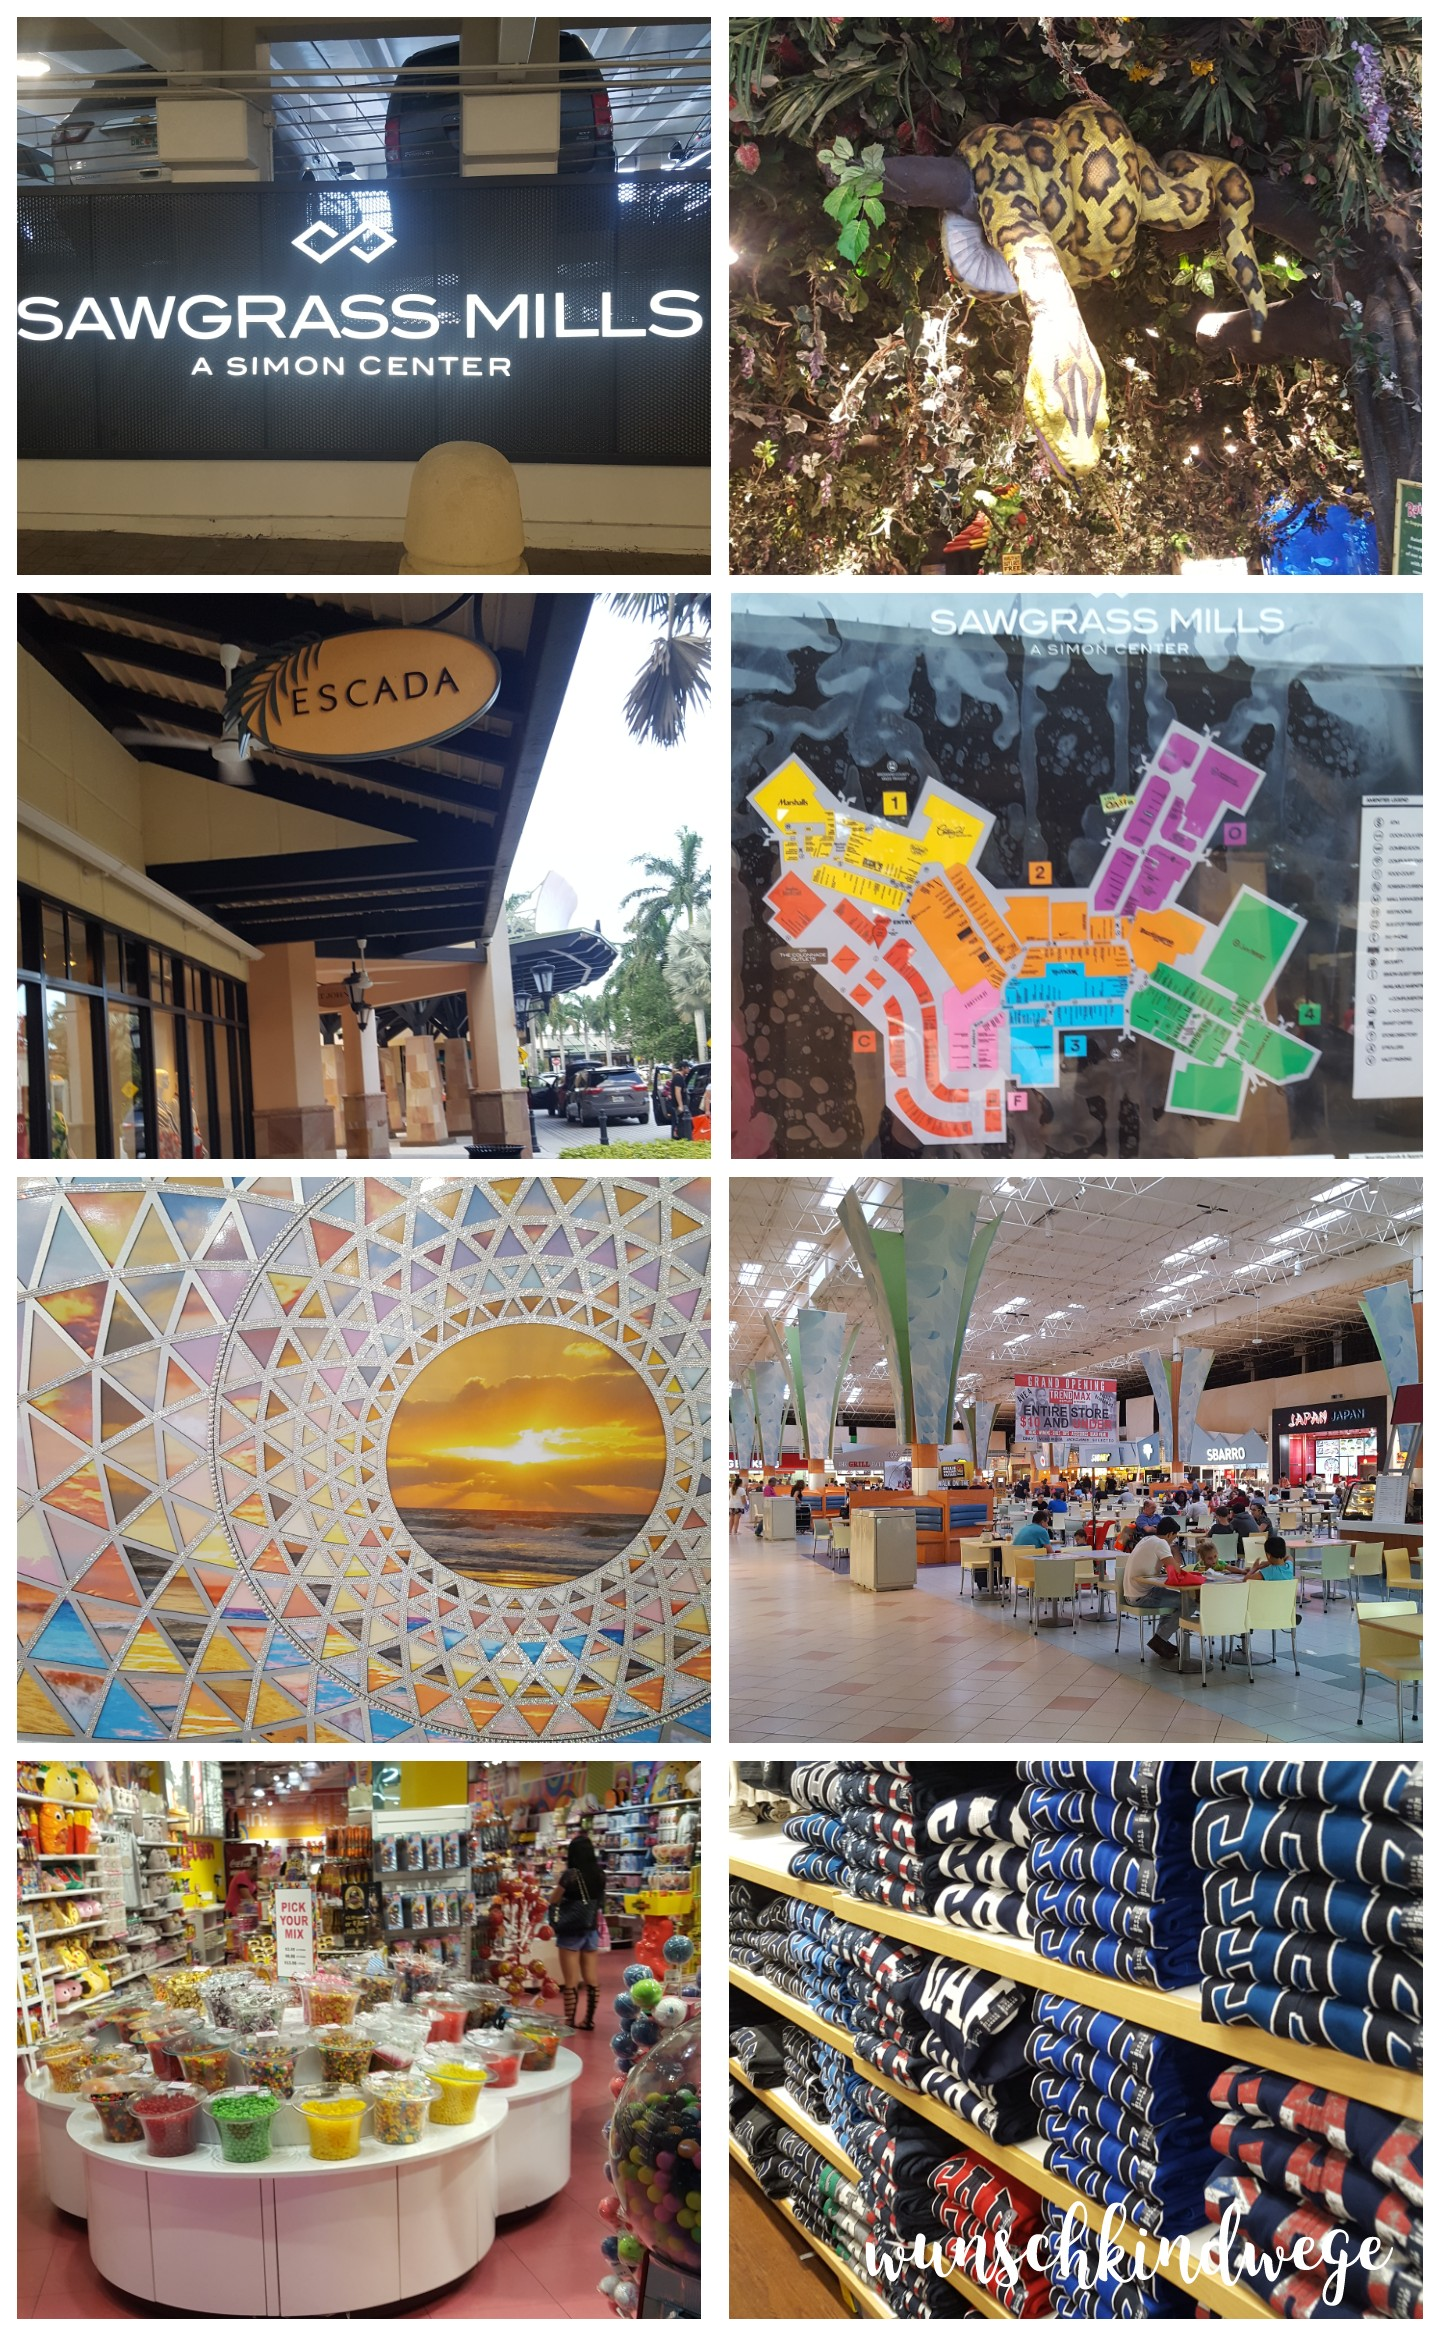 Sawgrass Mills Mall Fort Lauderdale Lauderdale-by-the-Sea